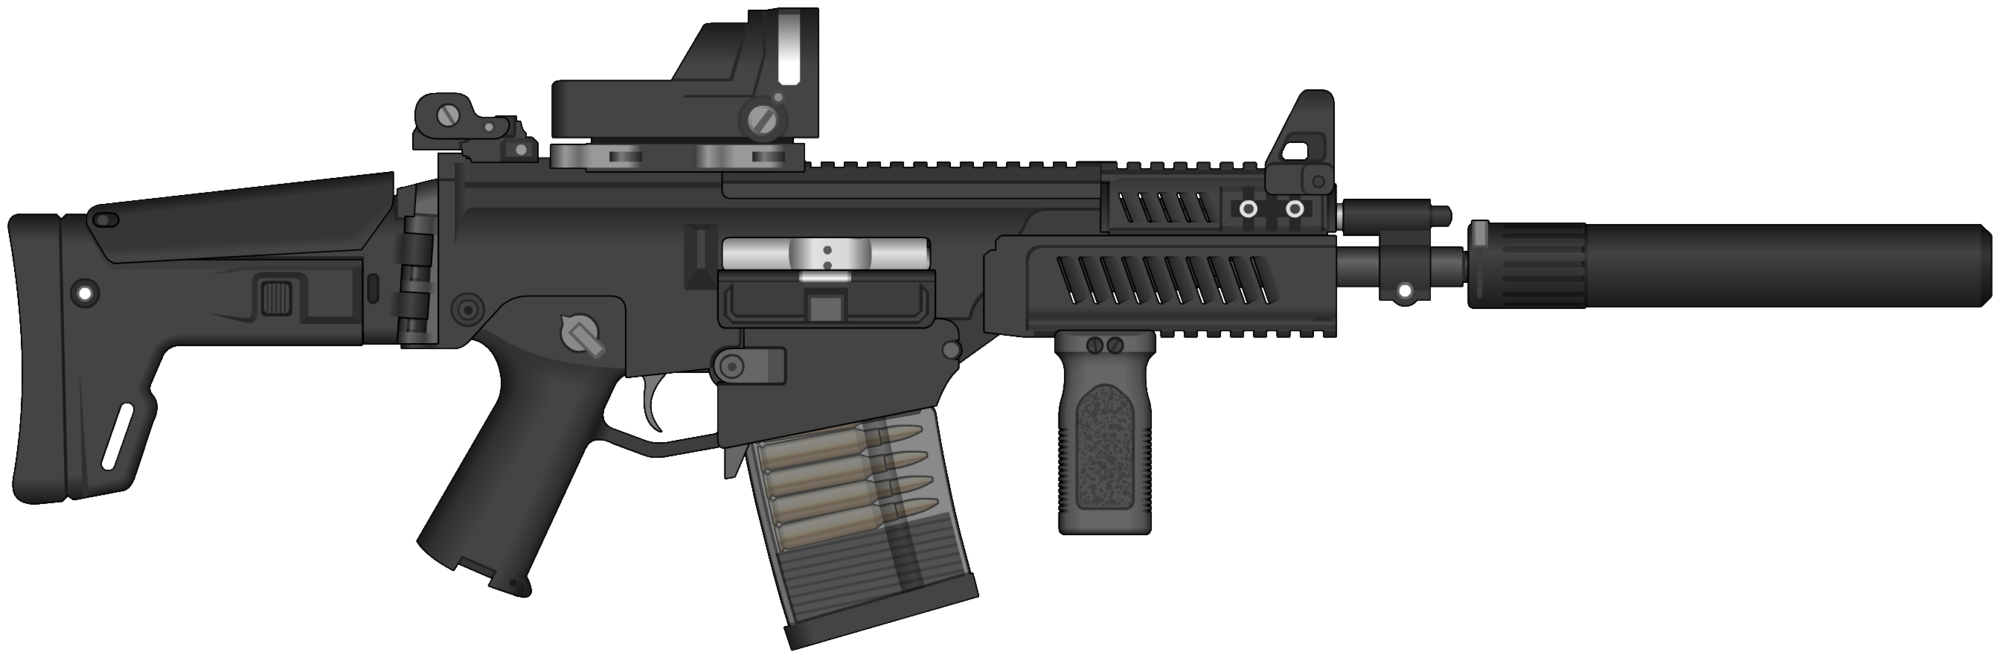 jpg black and white stock Mk assault rifle png. Vector 10mm gen